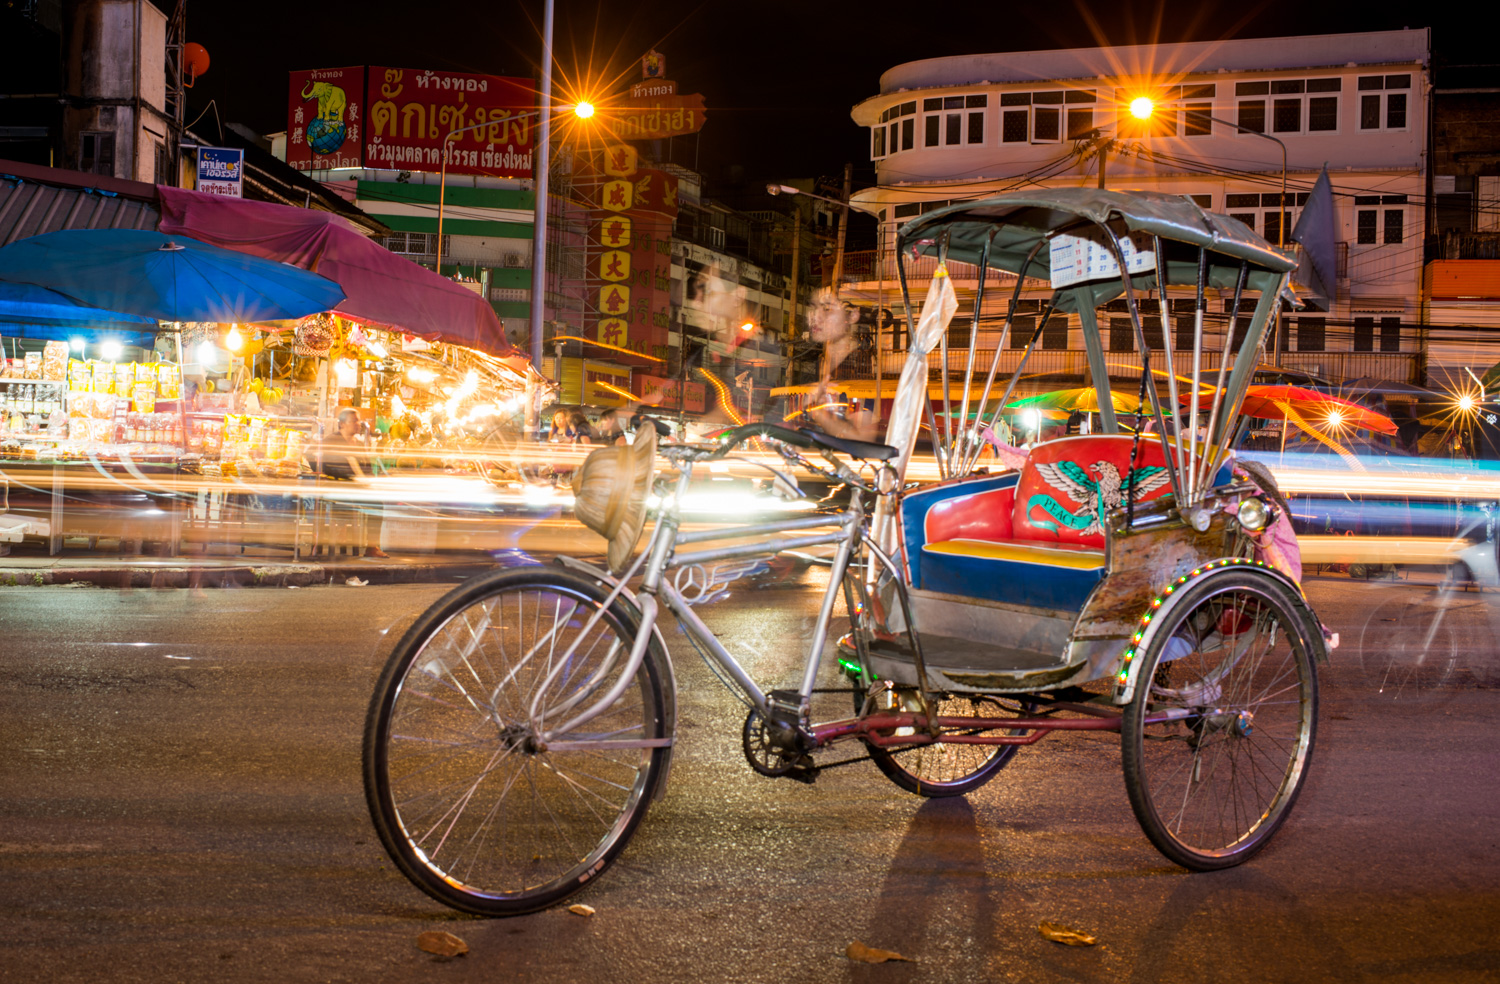 Tricycle Taxi Using a Slow Shutter Speed to a Create Sense of Motion